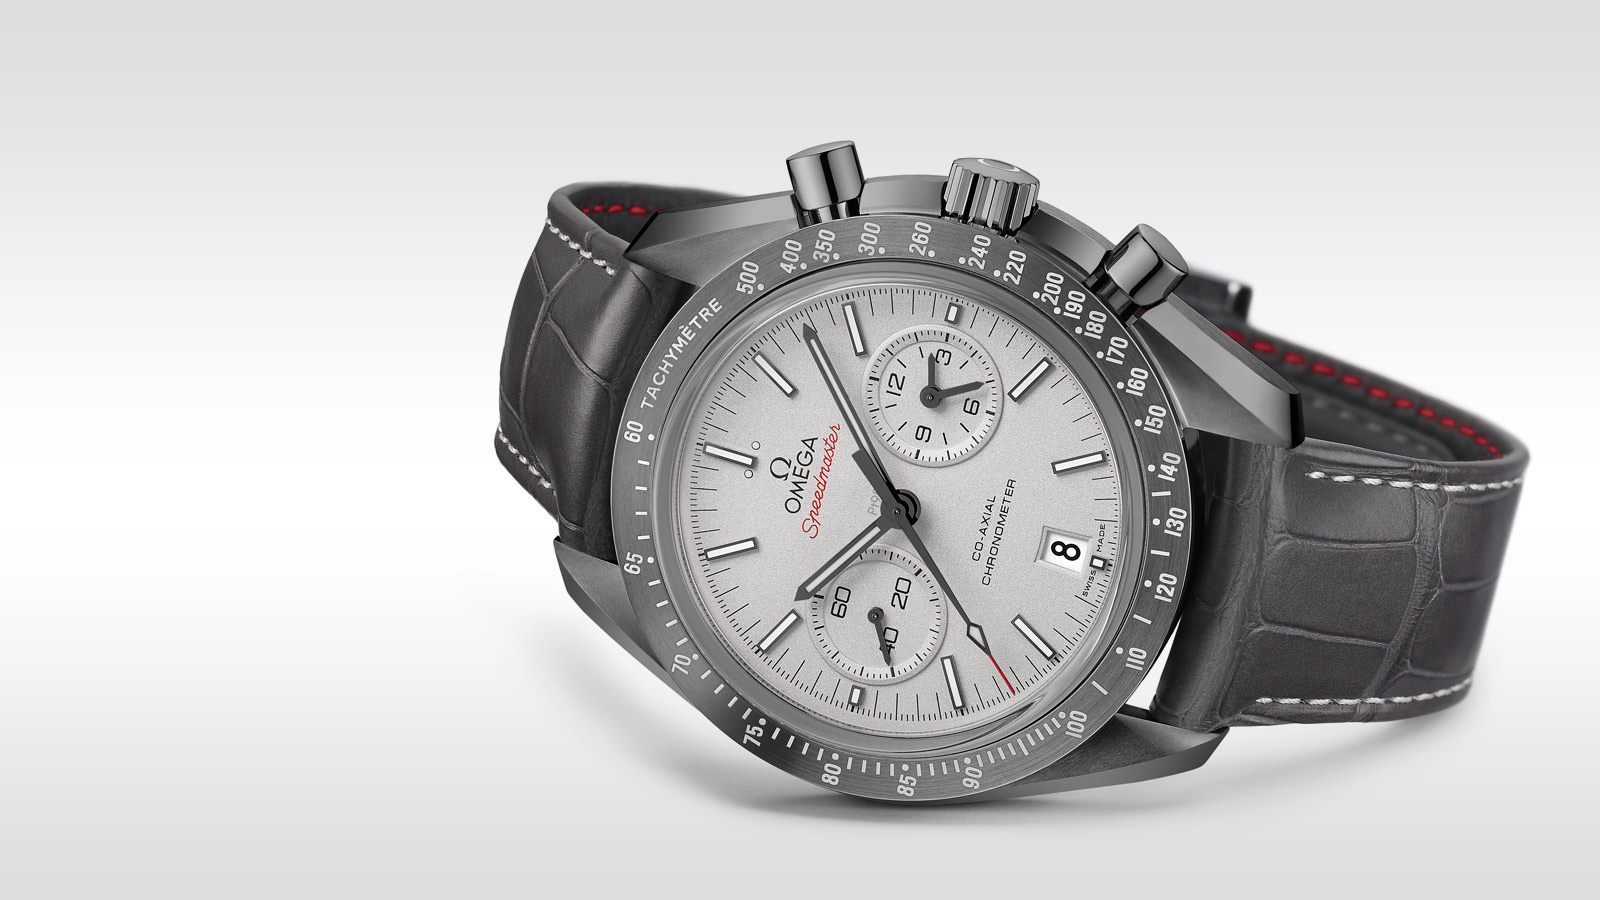 Speedmaster ムーンウォッチ Moonwatch Omega Co‑Axial Chronograph 44.25 mm - 311.93.44.51.99.001 - ビュー 5